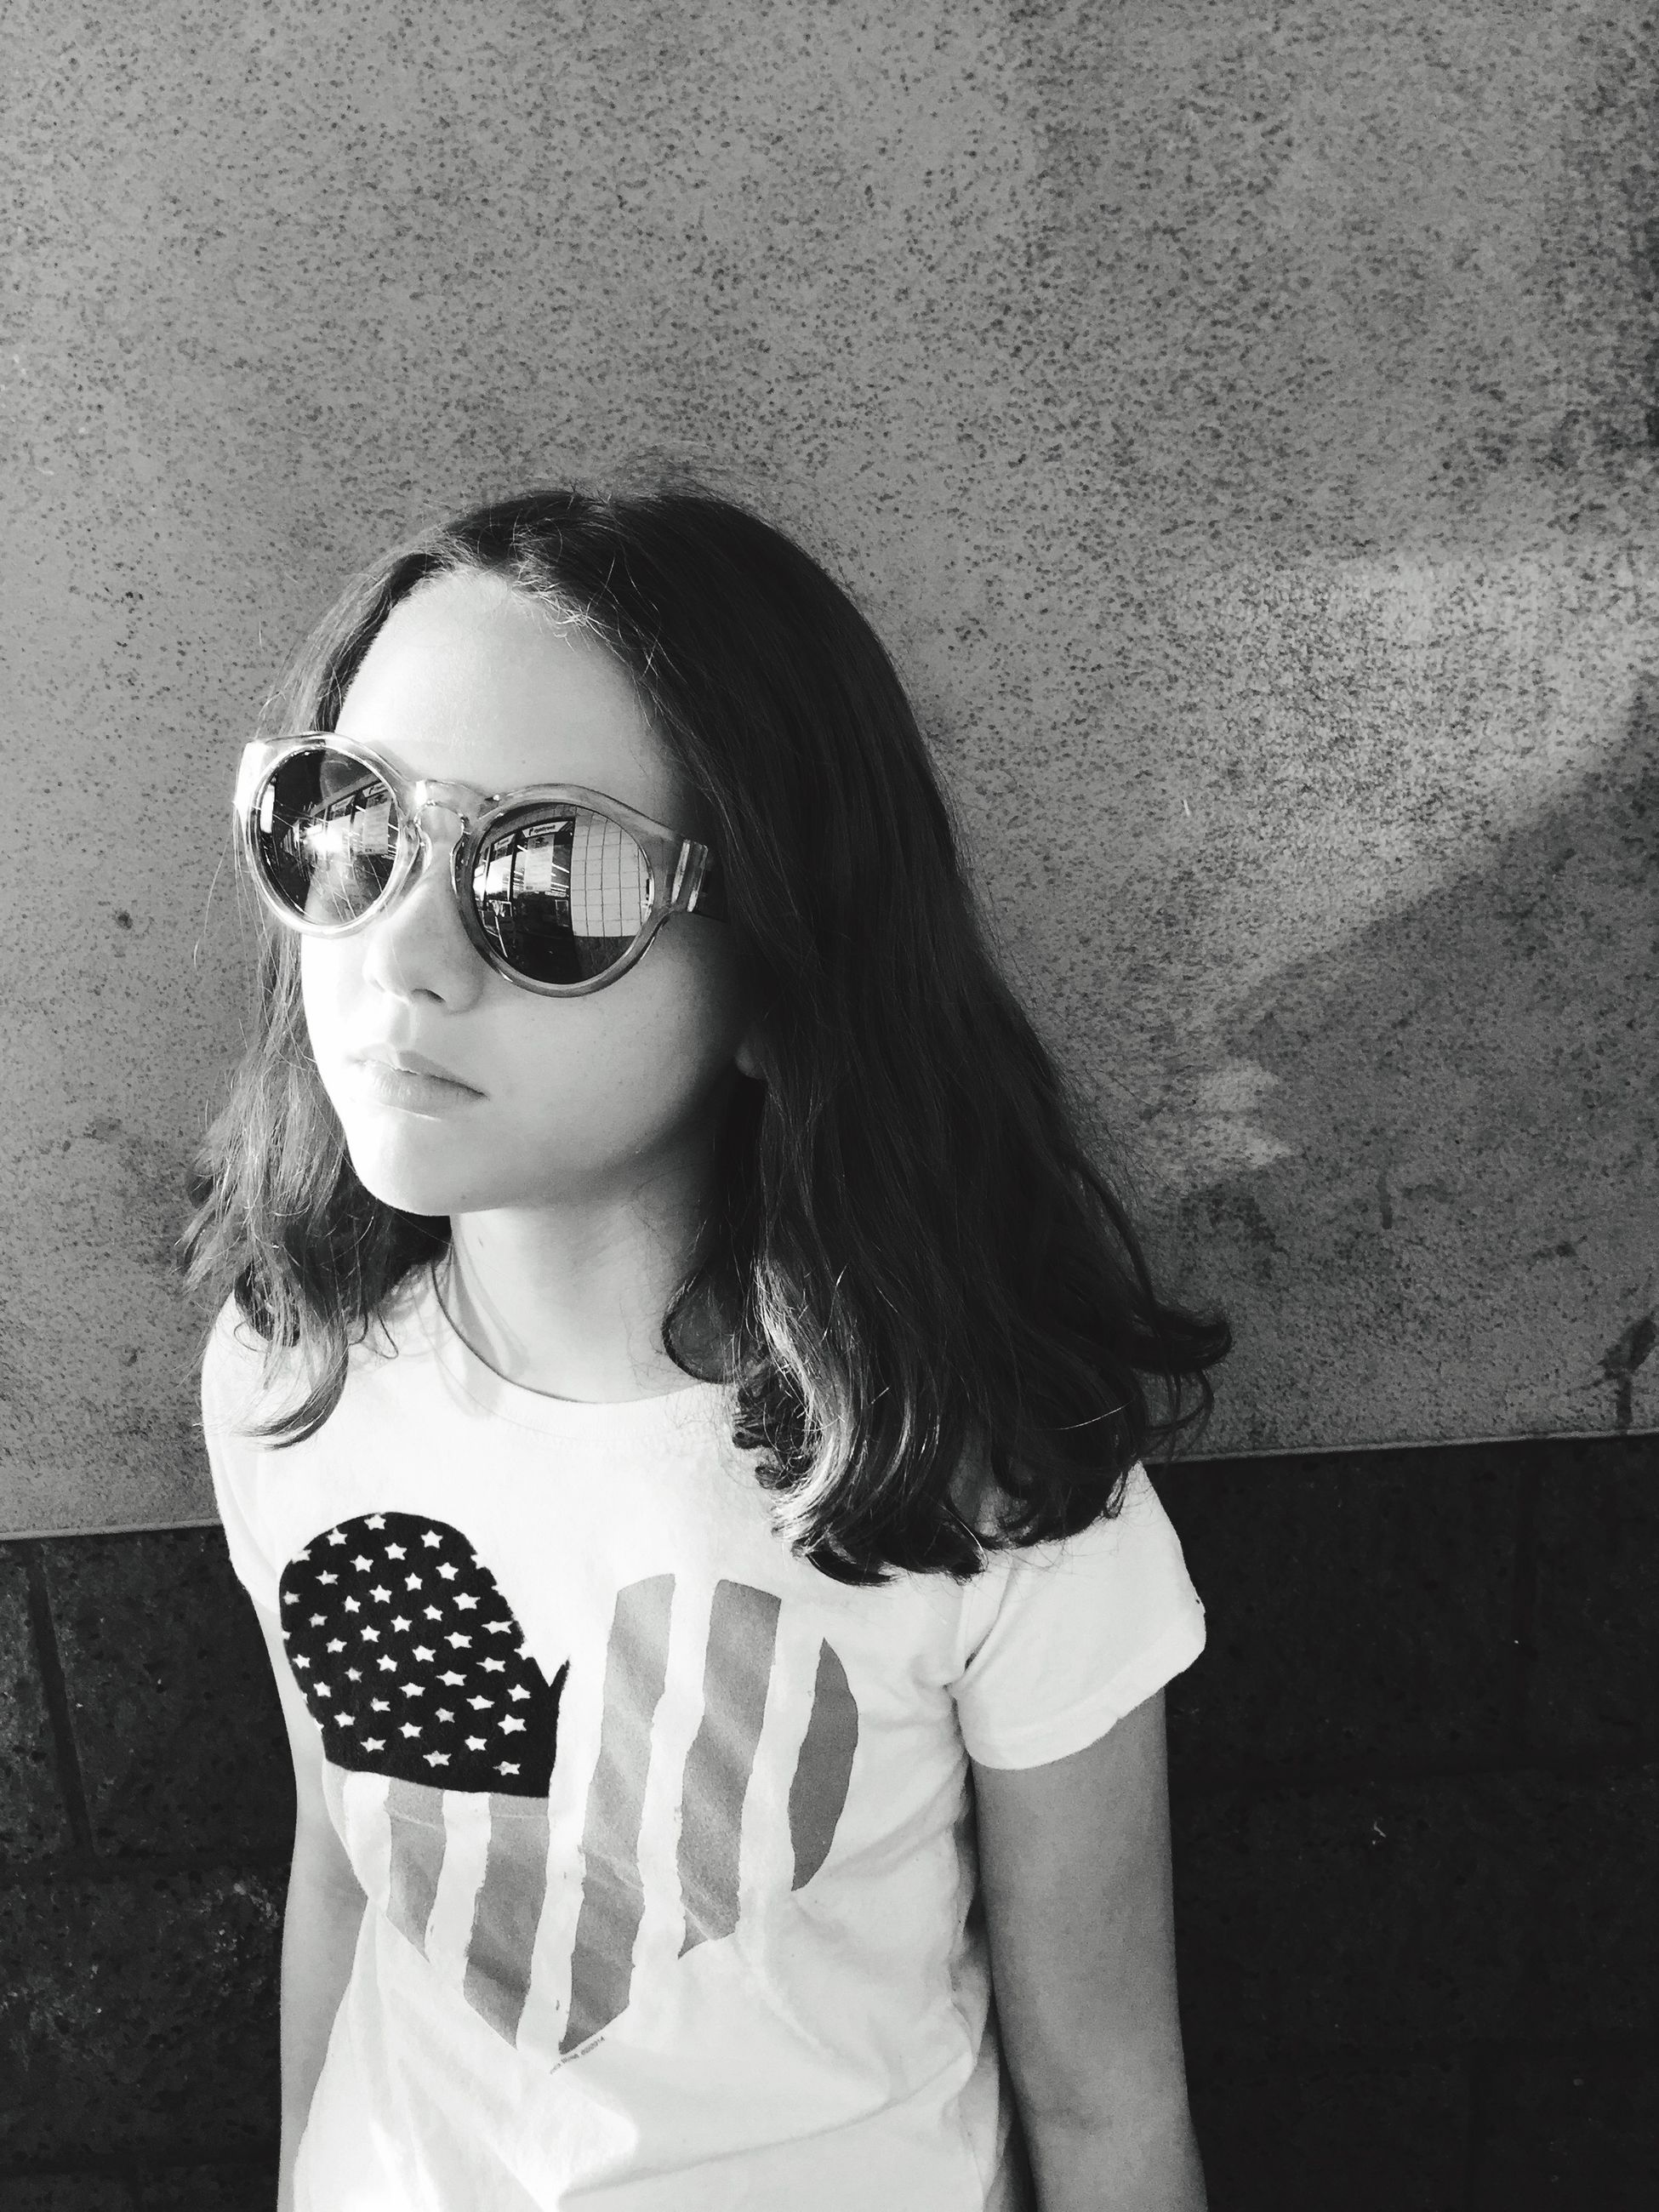 Hanging Out Love This Kid My April Bear Beautiful Portrait Of America American girl Model Cheese! Black & White Love Your Kids 💋💜 Taking Photos